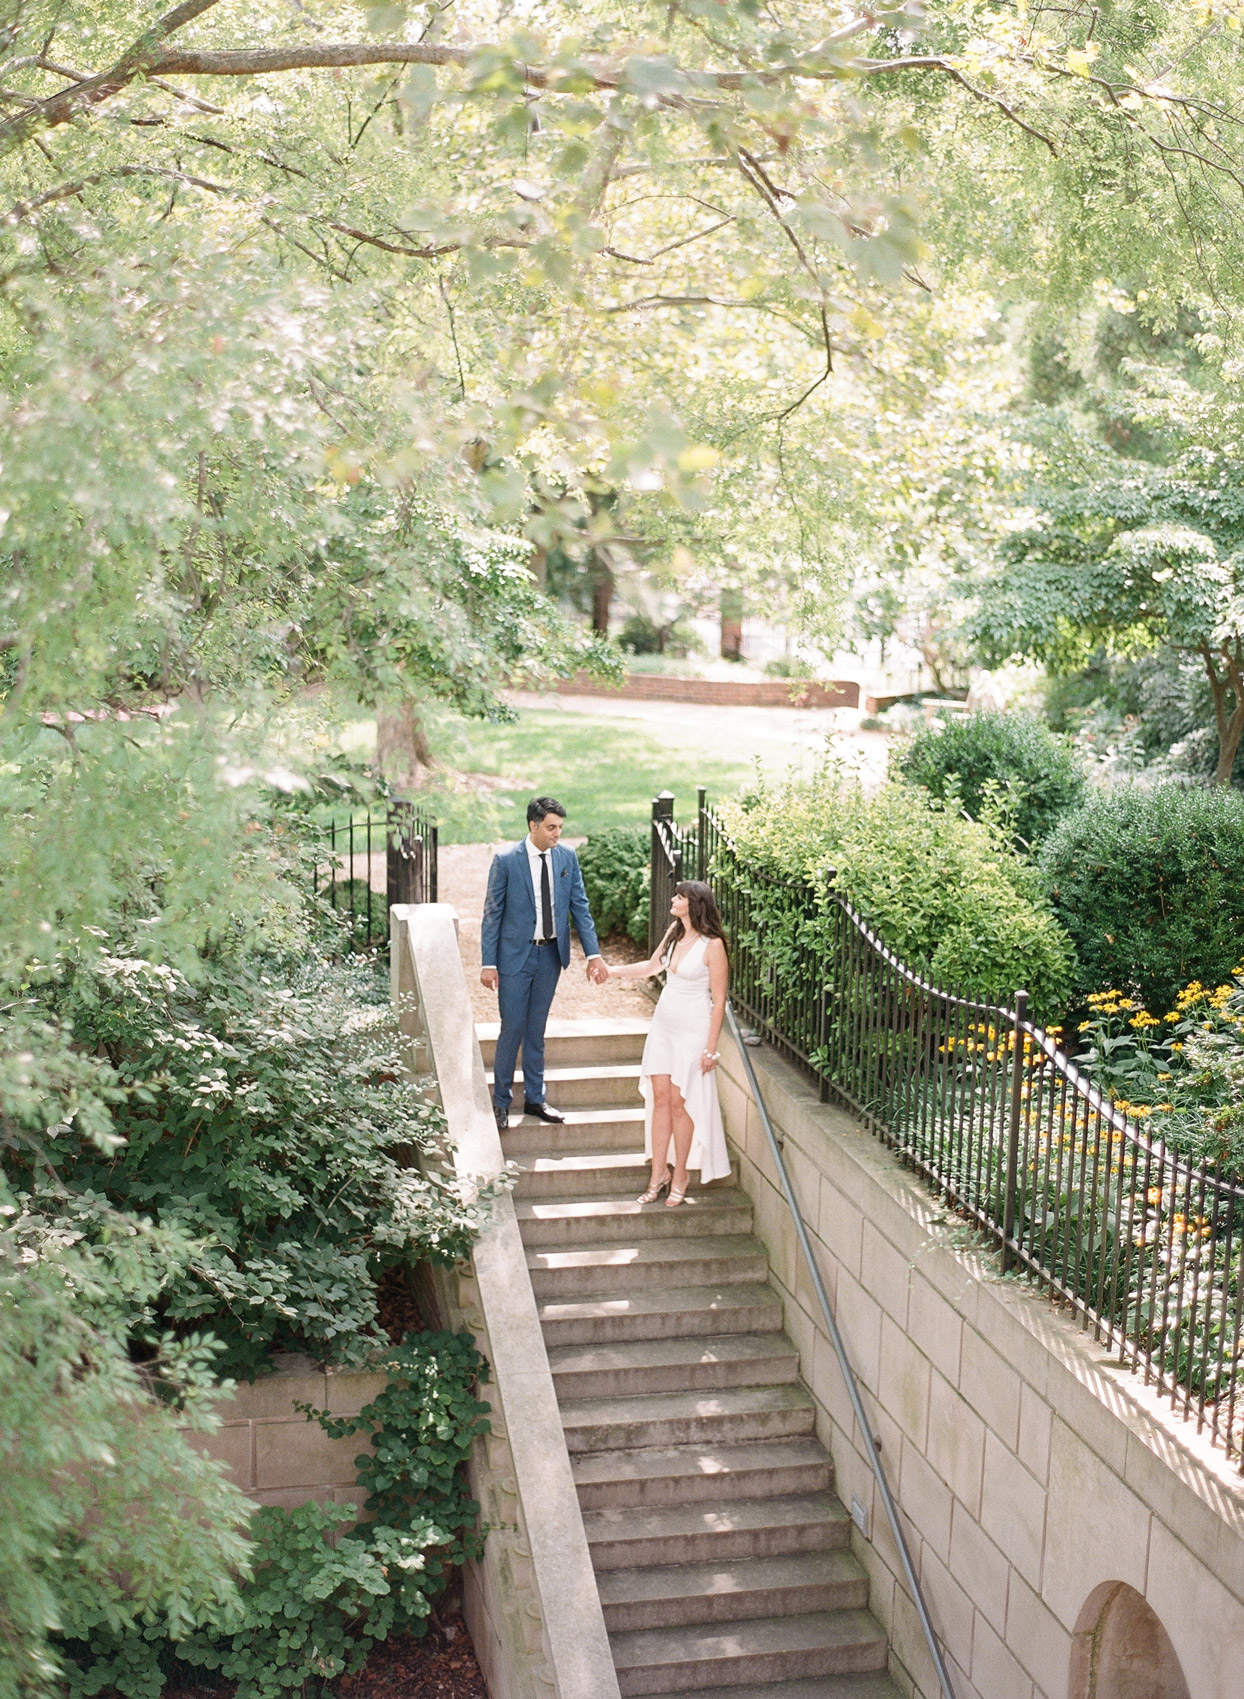 bride and groom holding hands descending staircase